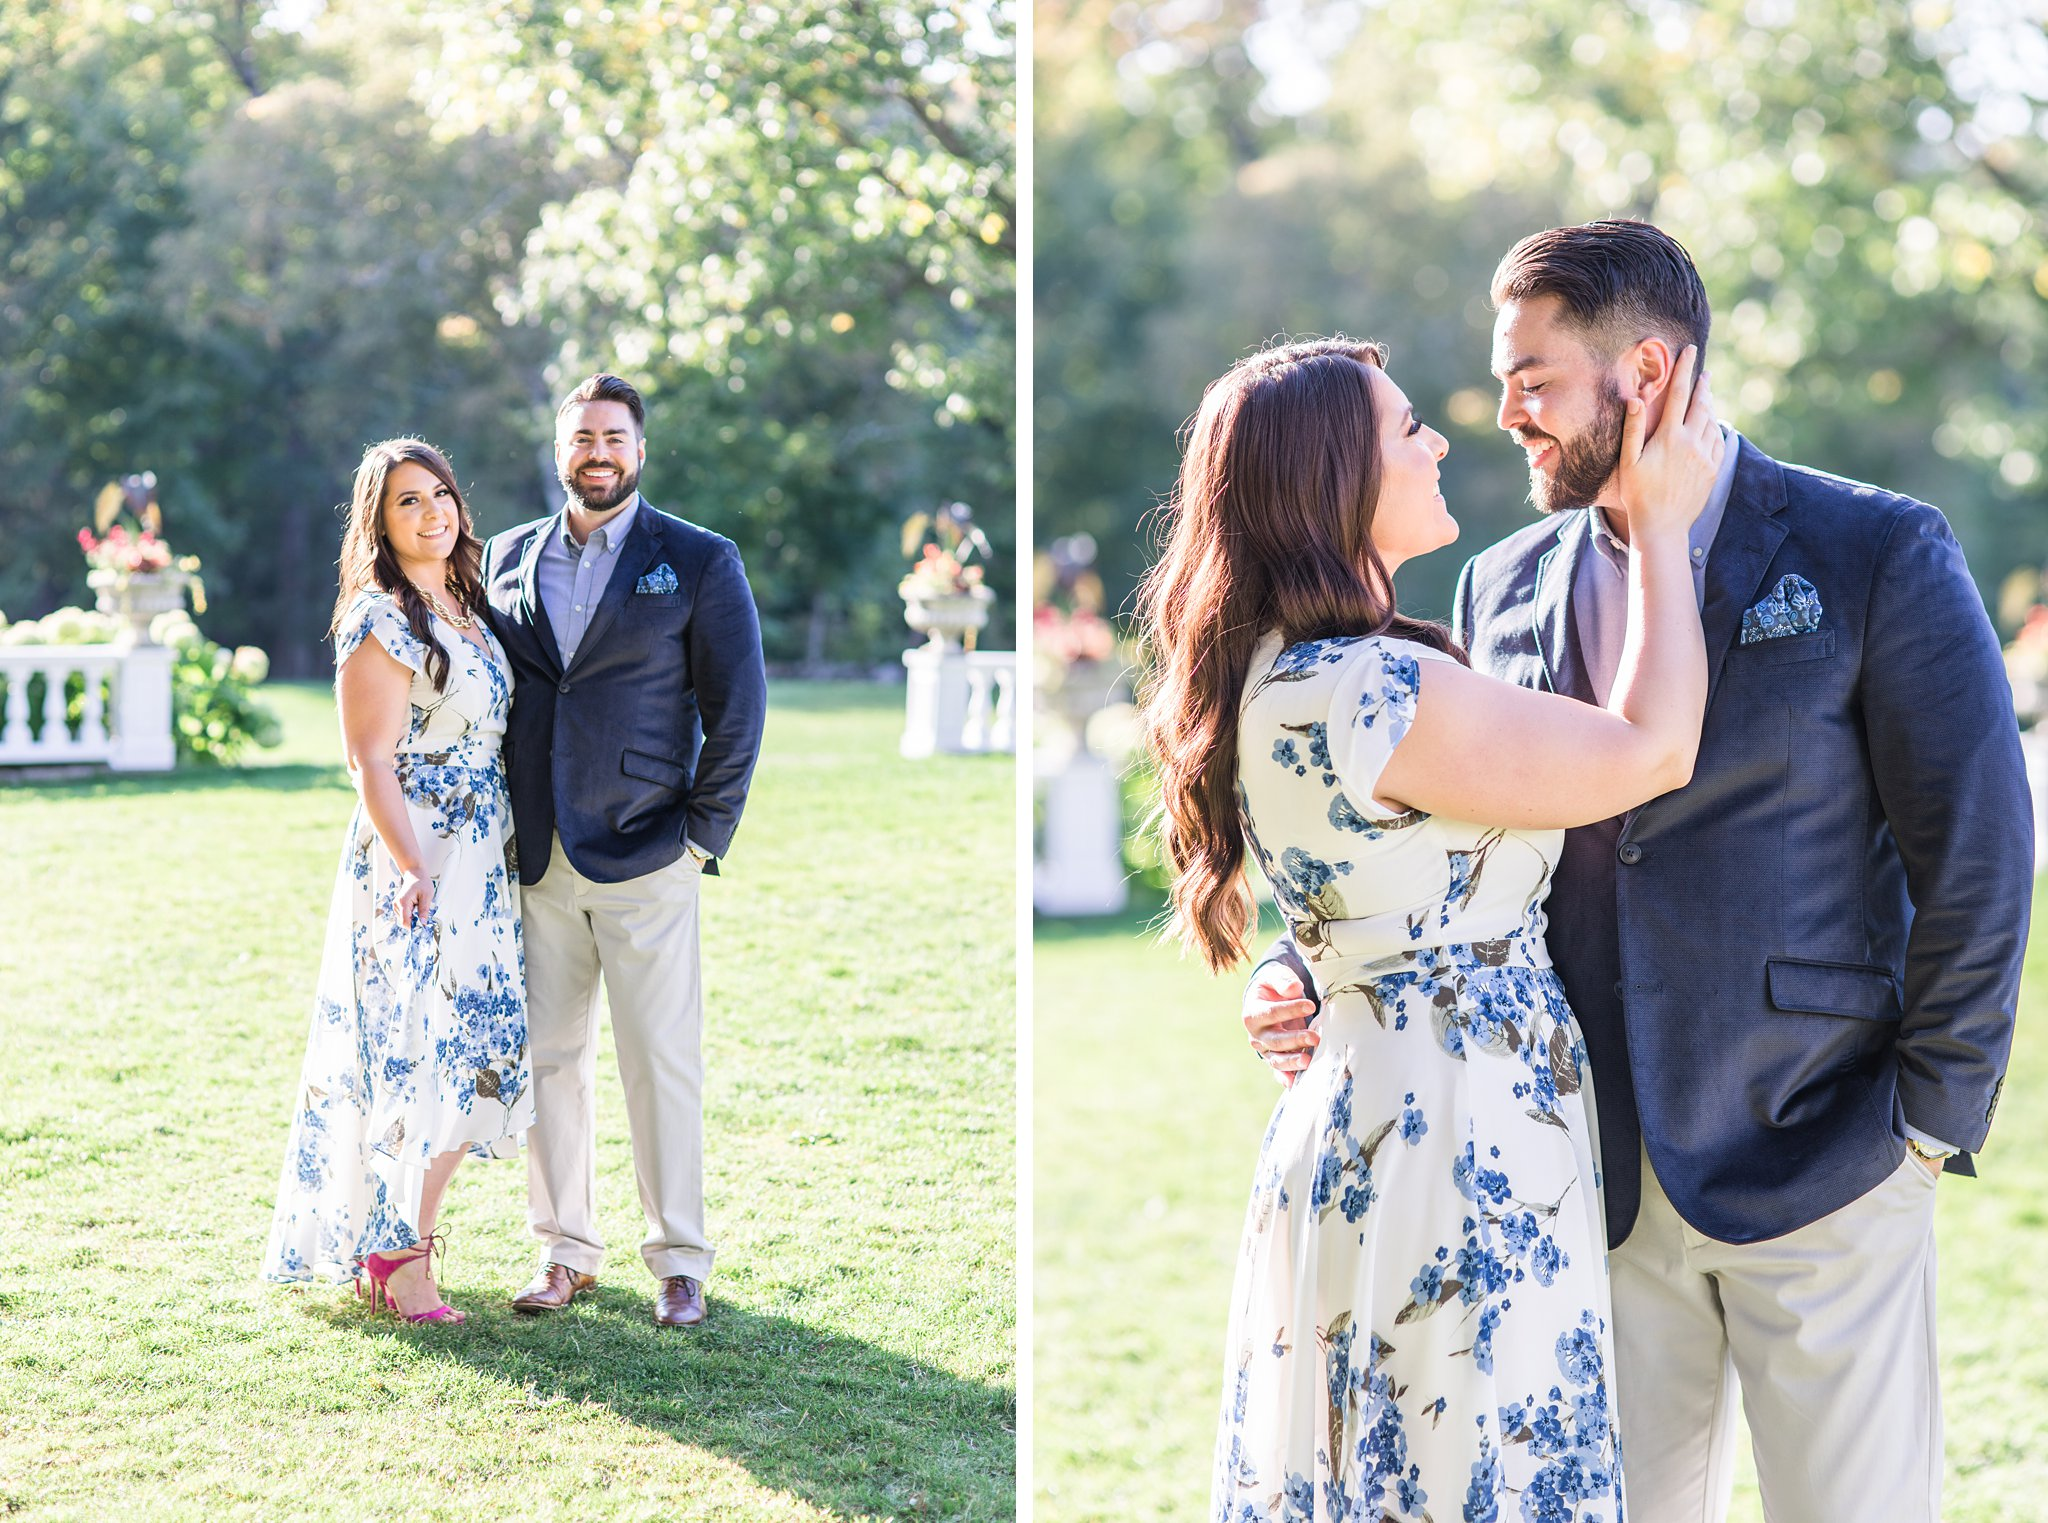 White and blue floral dress, blue jacket, Mackenzie King Estate Engagement Photos by Amy Pinder Photography